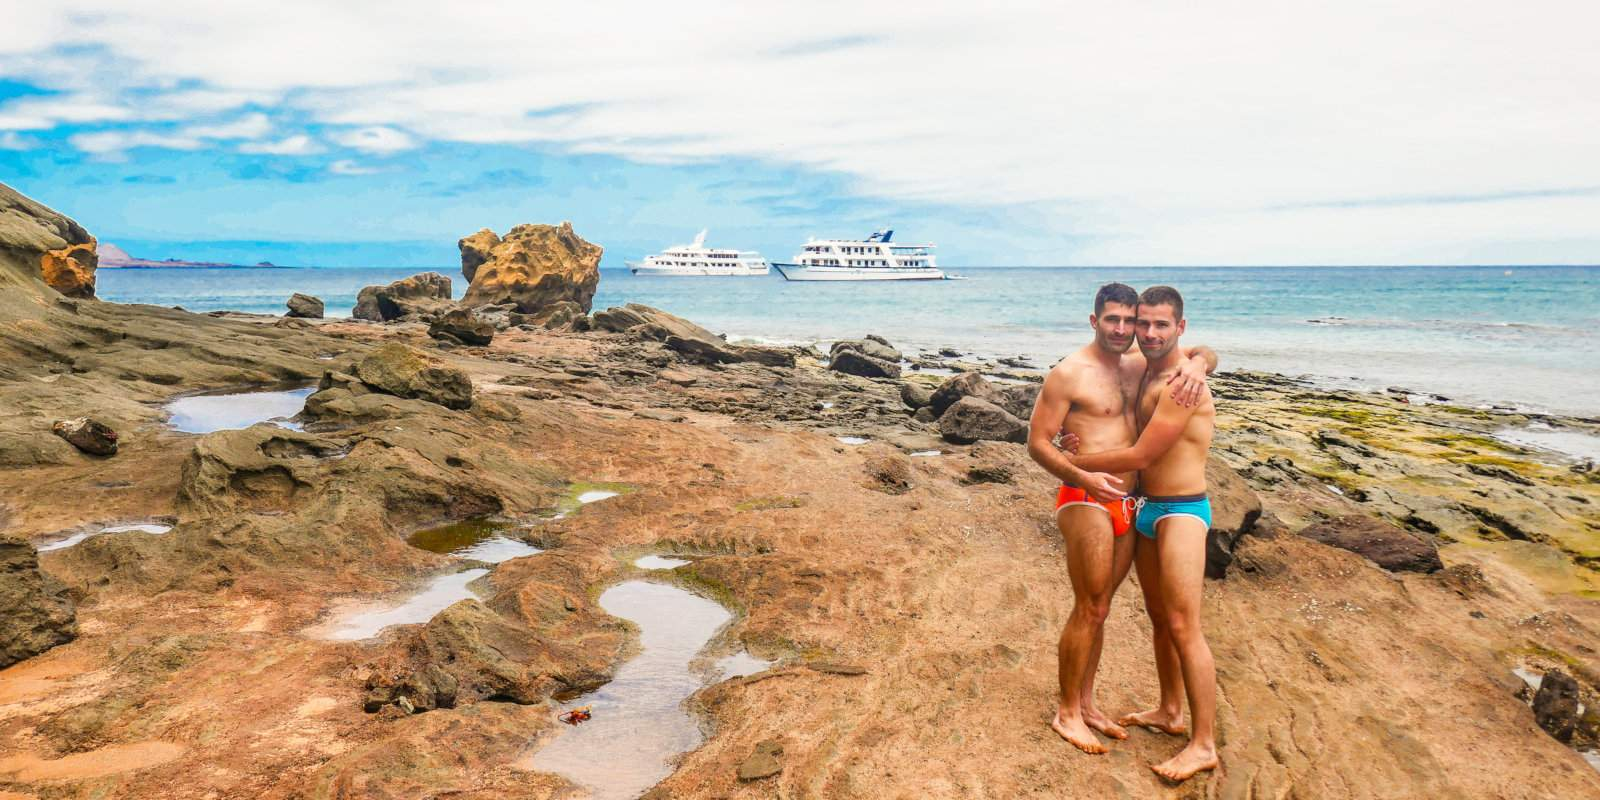 Exploring the Galapagos in seclusion on our gay charter cruise with Ishpingo tours